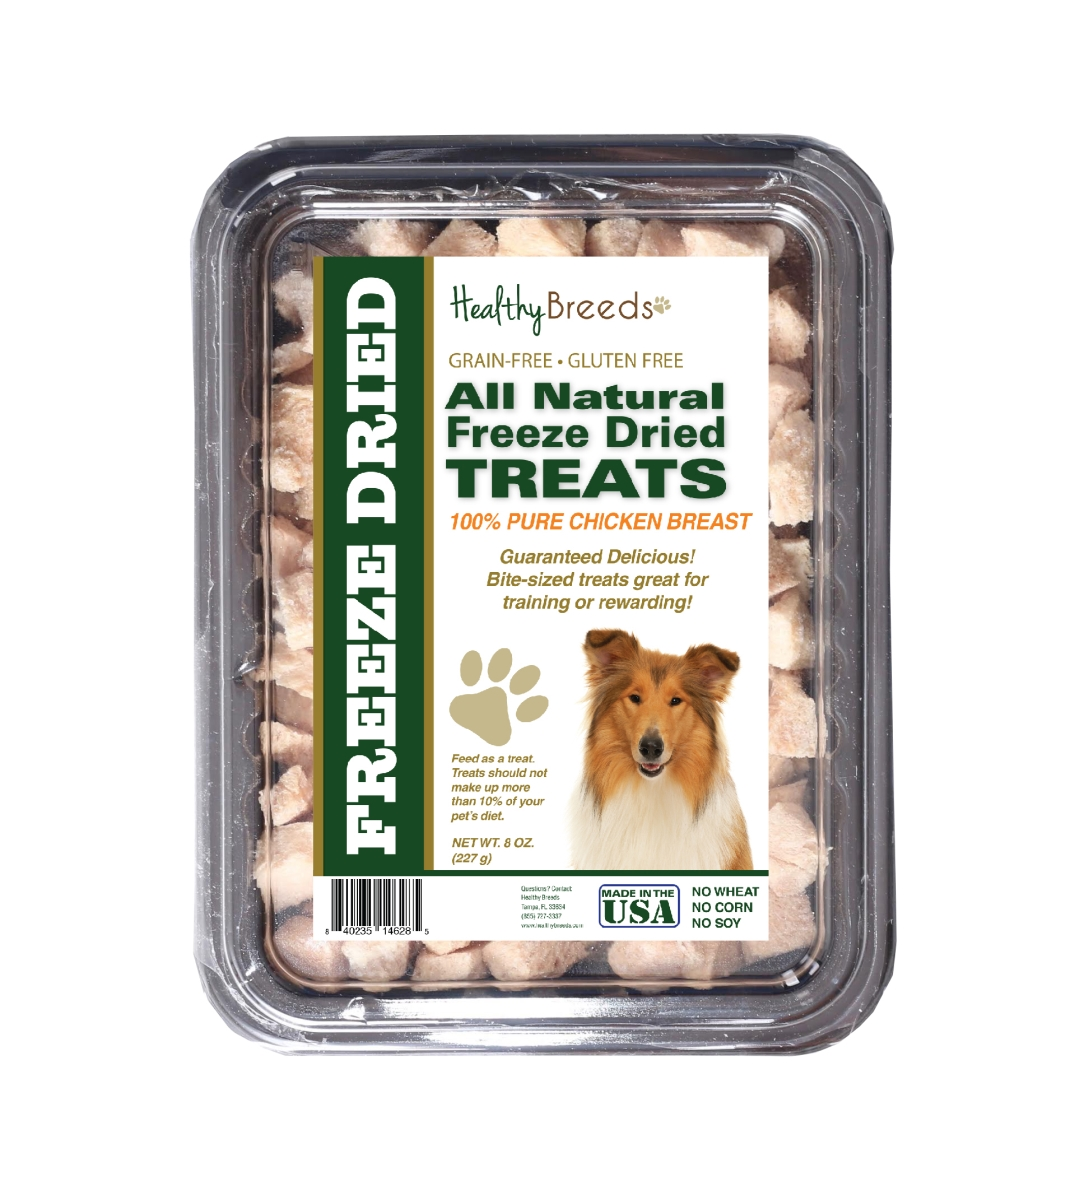 Healthy Breeds 840235146285 8 oz Collie All Natural Freeze Dried Treats Chicken Breast